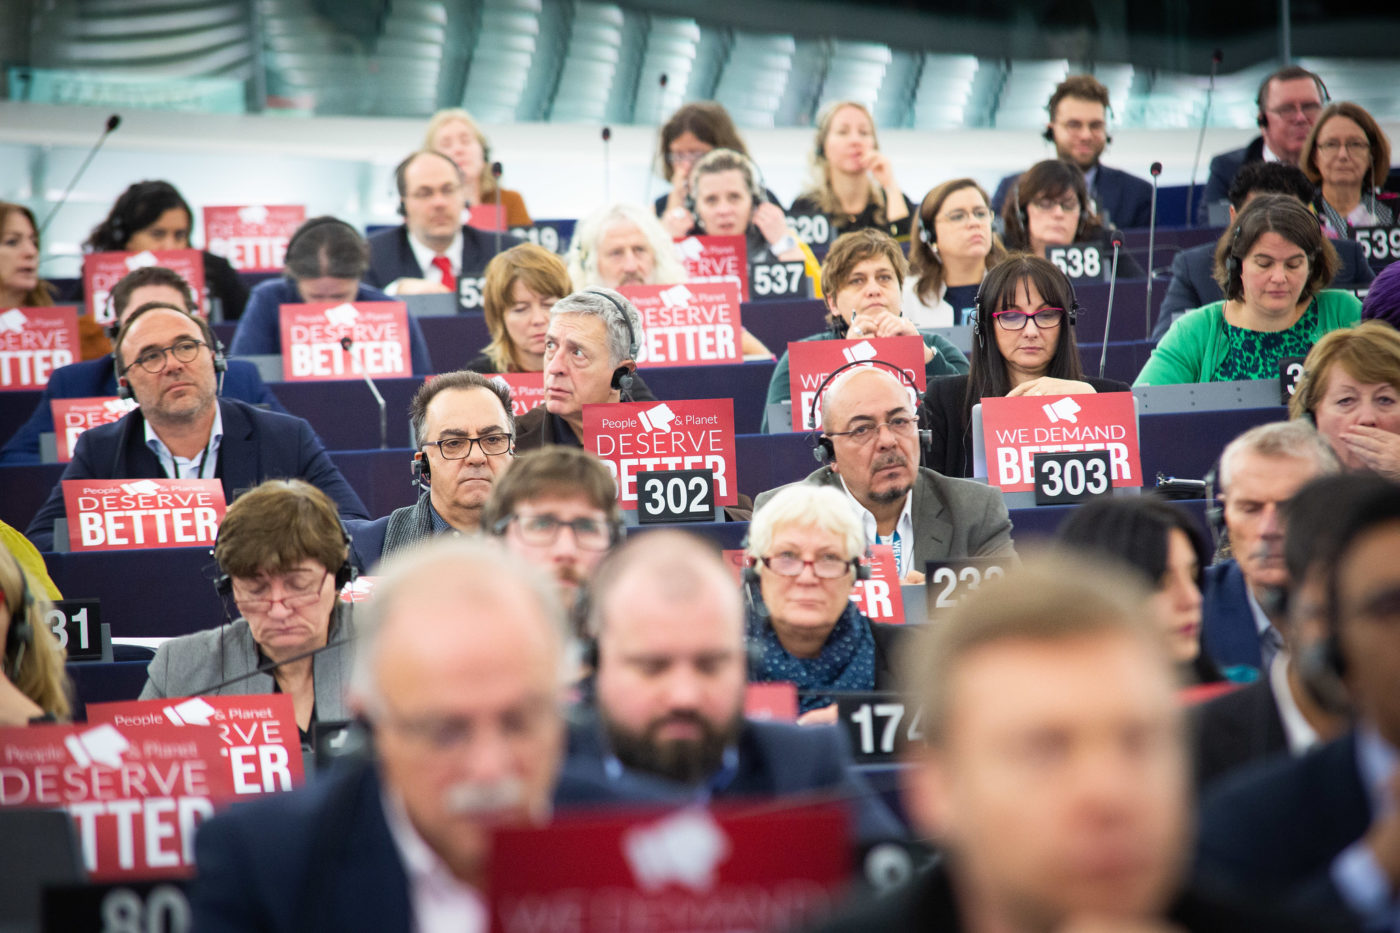 People & planet deserve better - Left MEPs vote against new Commission